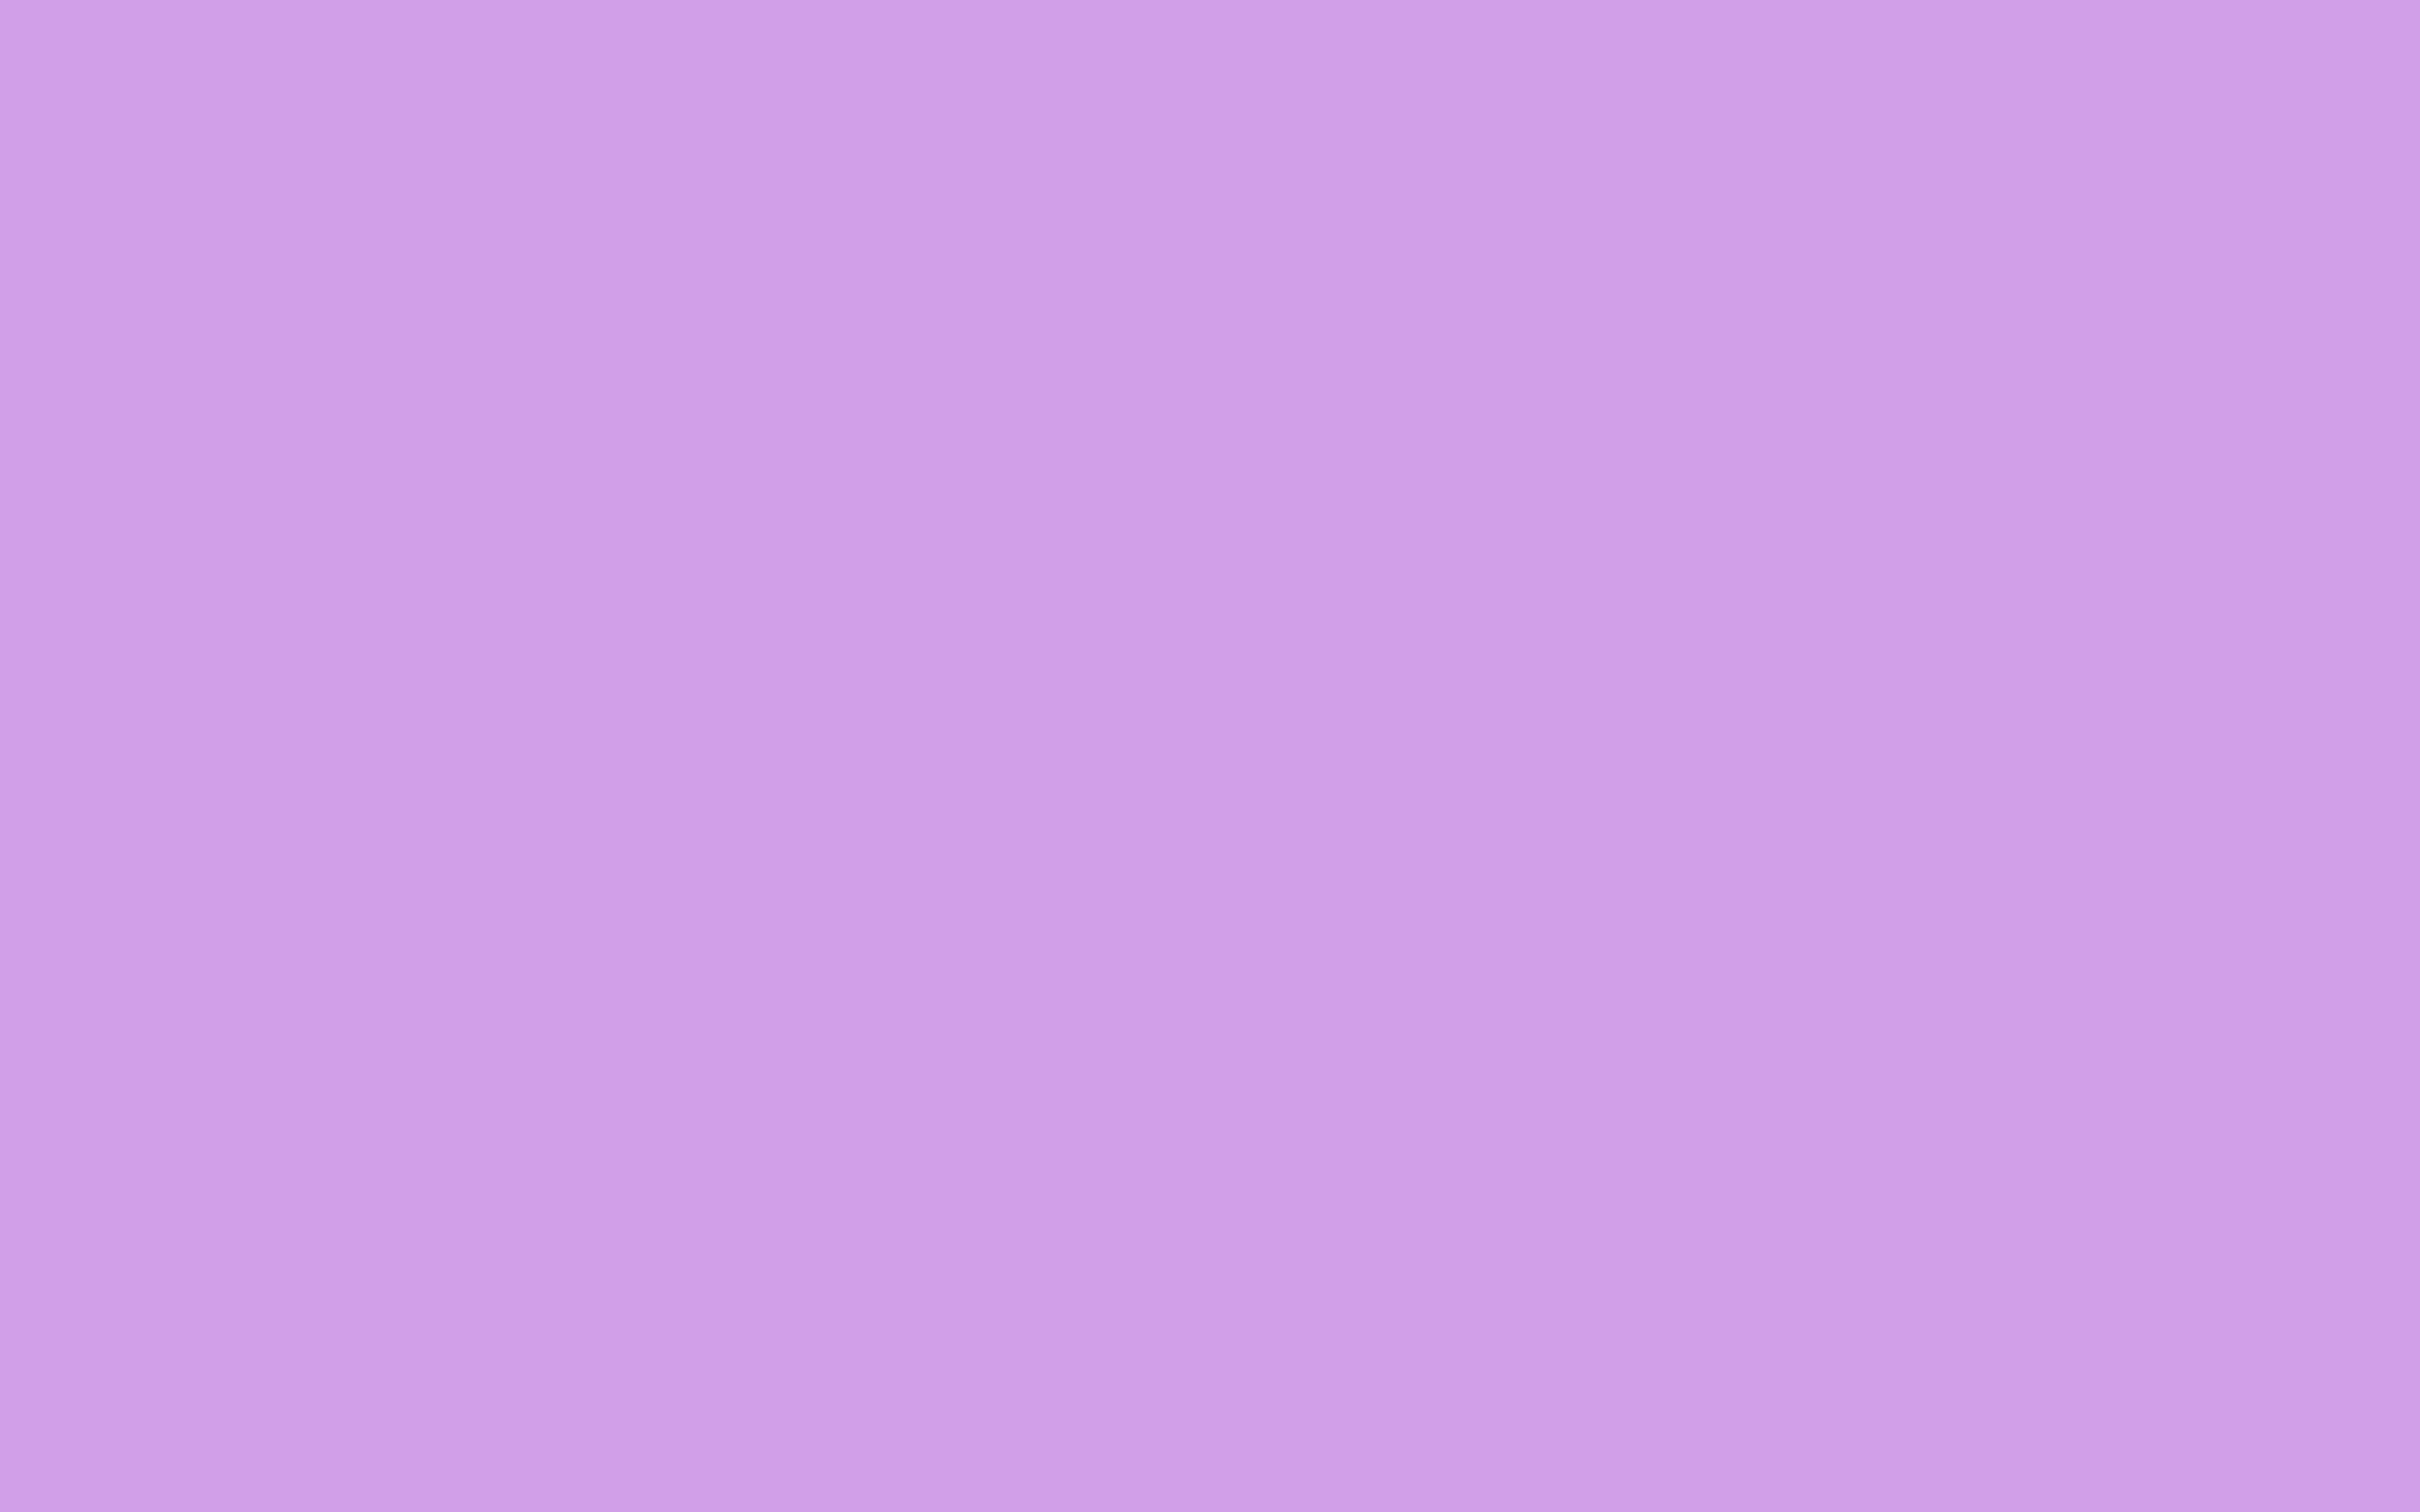 2880x1800 Bright Ube Solid Color Background